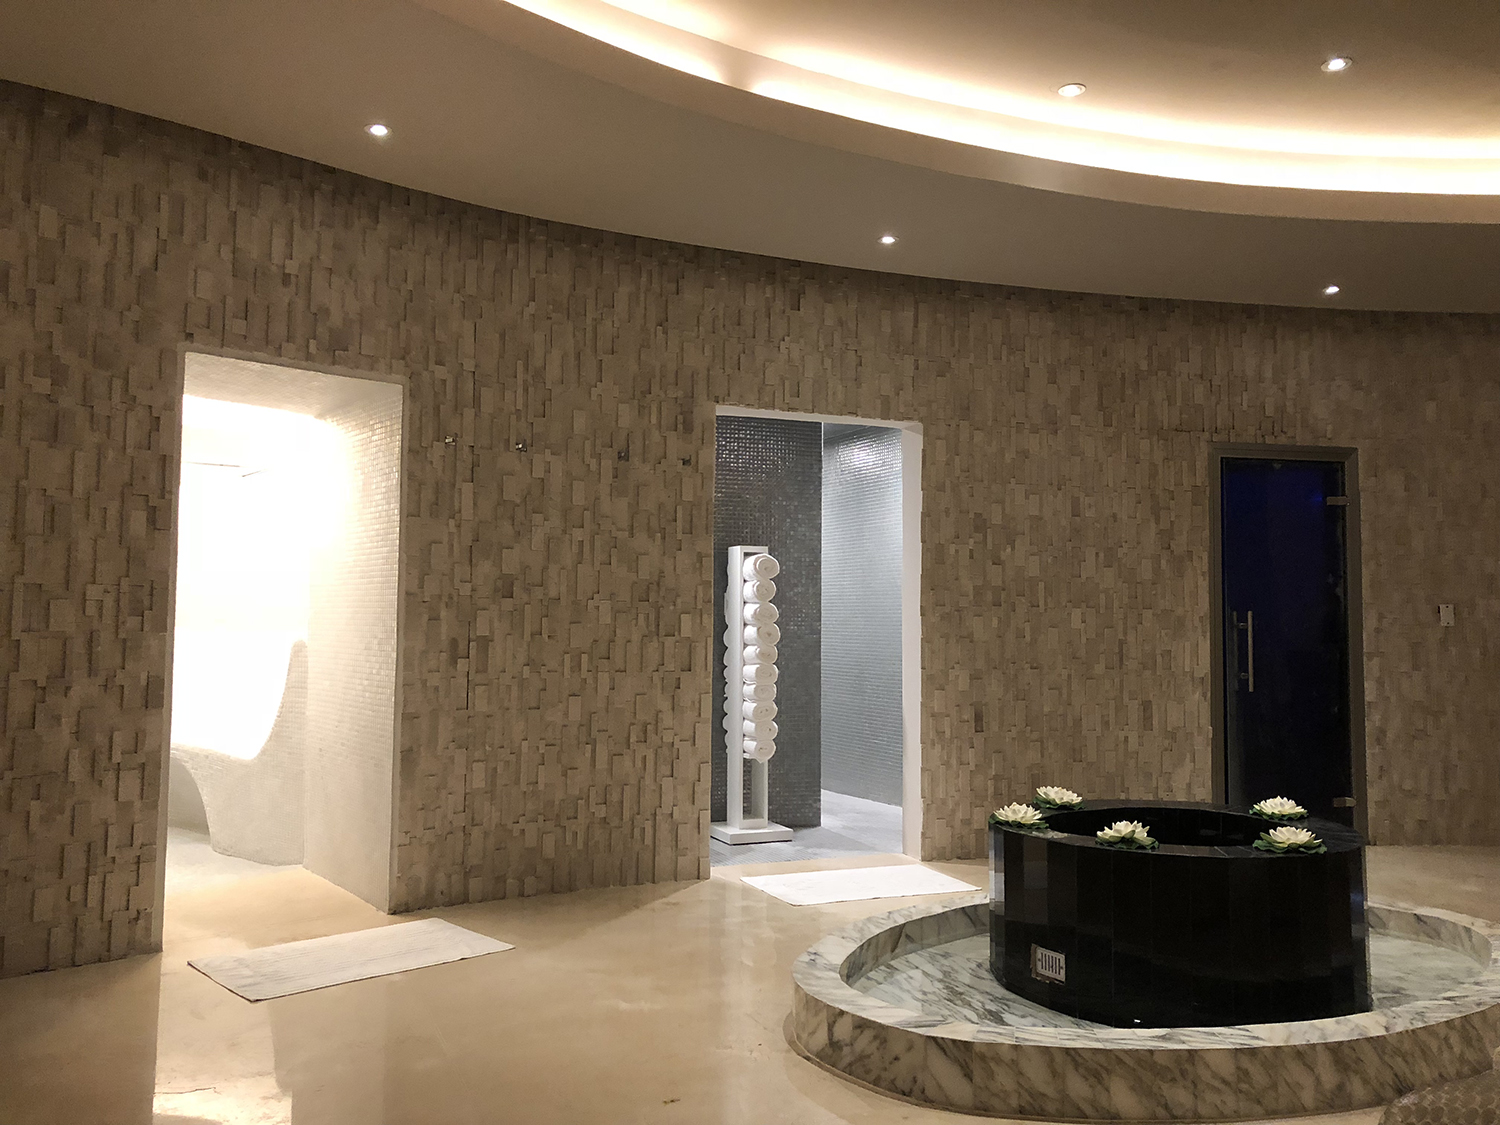 The hydrotherapy journey includes an ice room, rain shower and steam room.